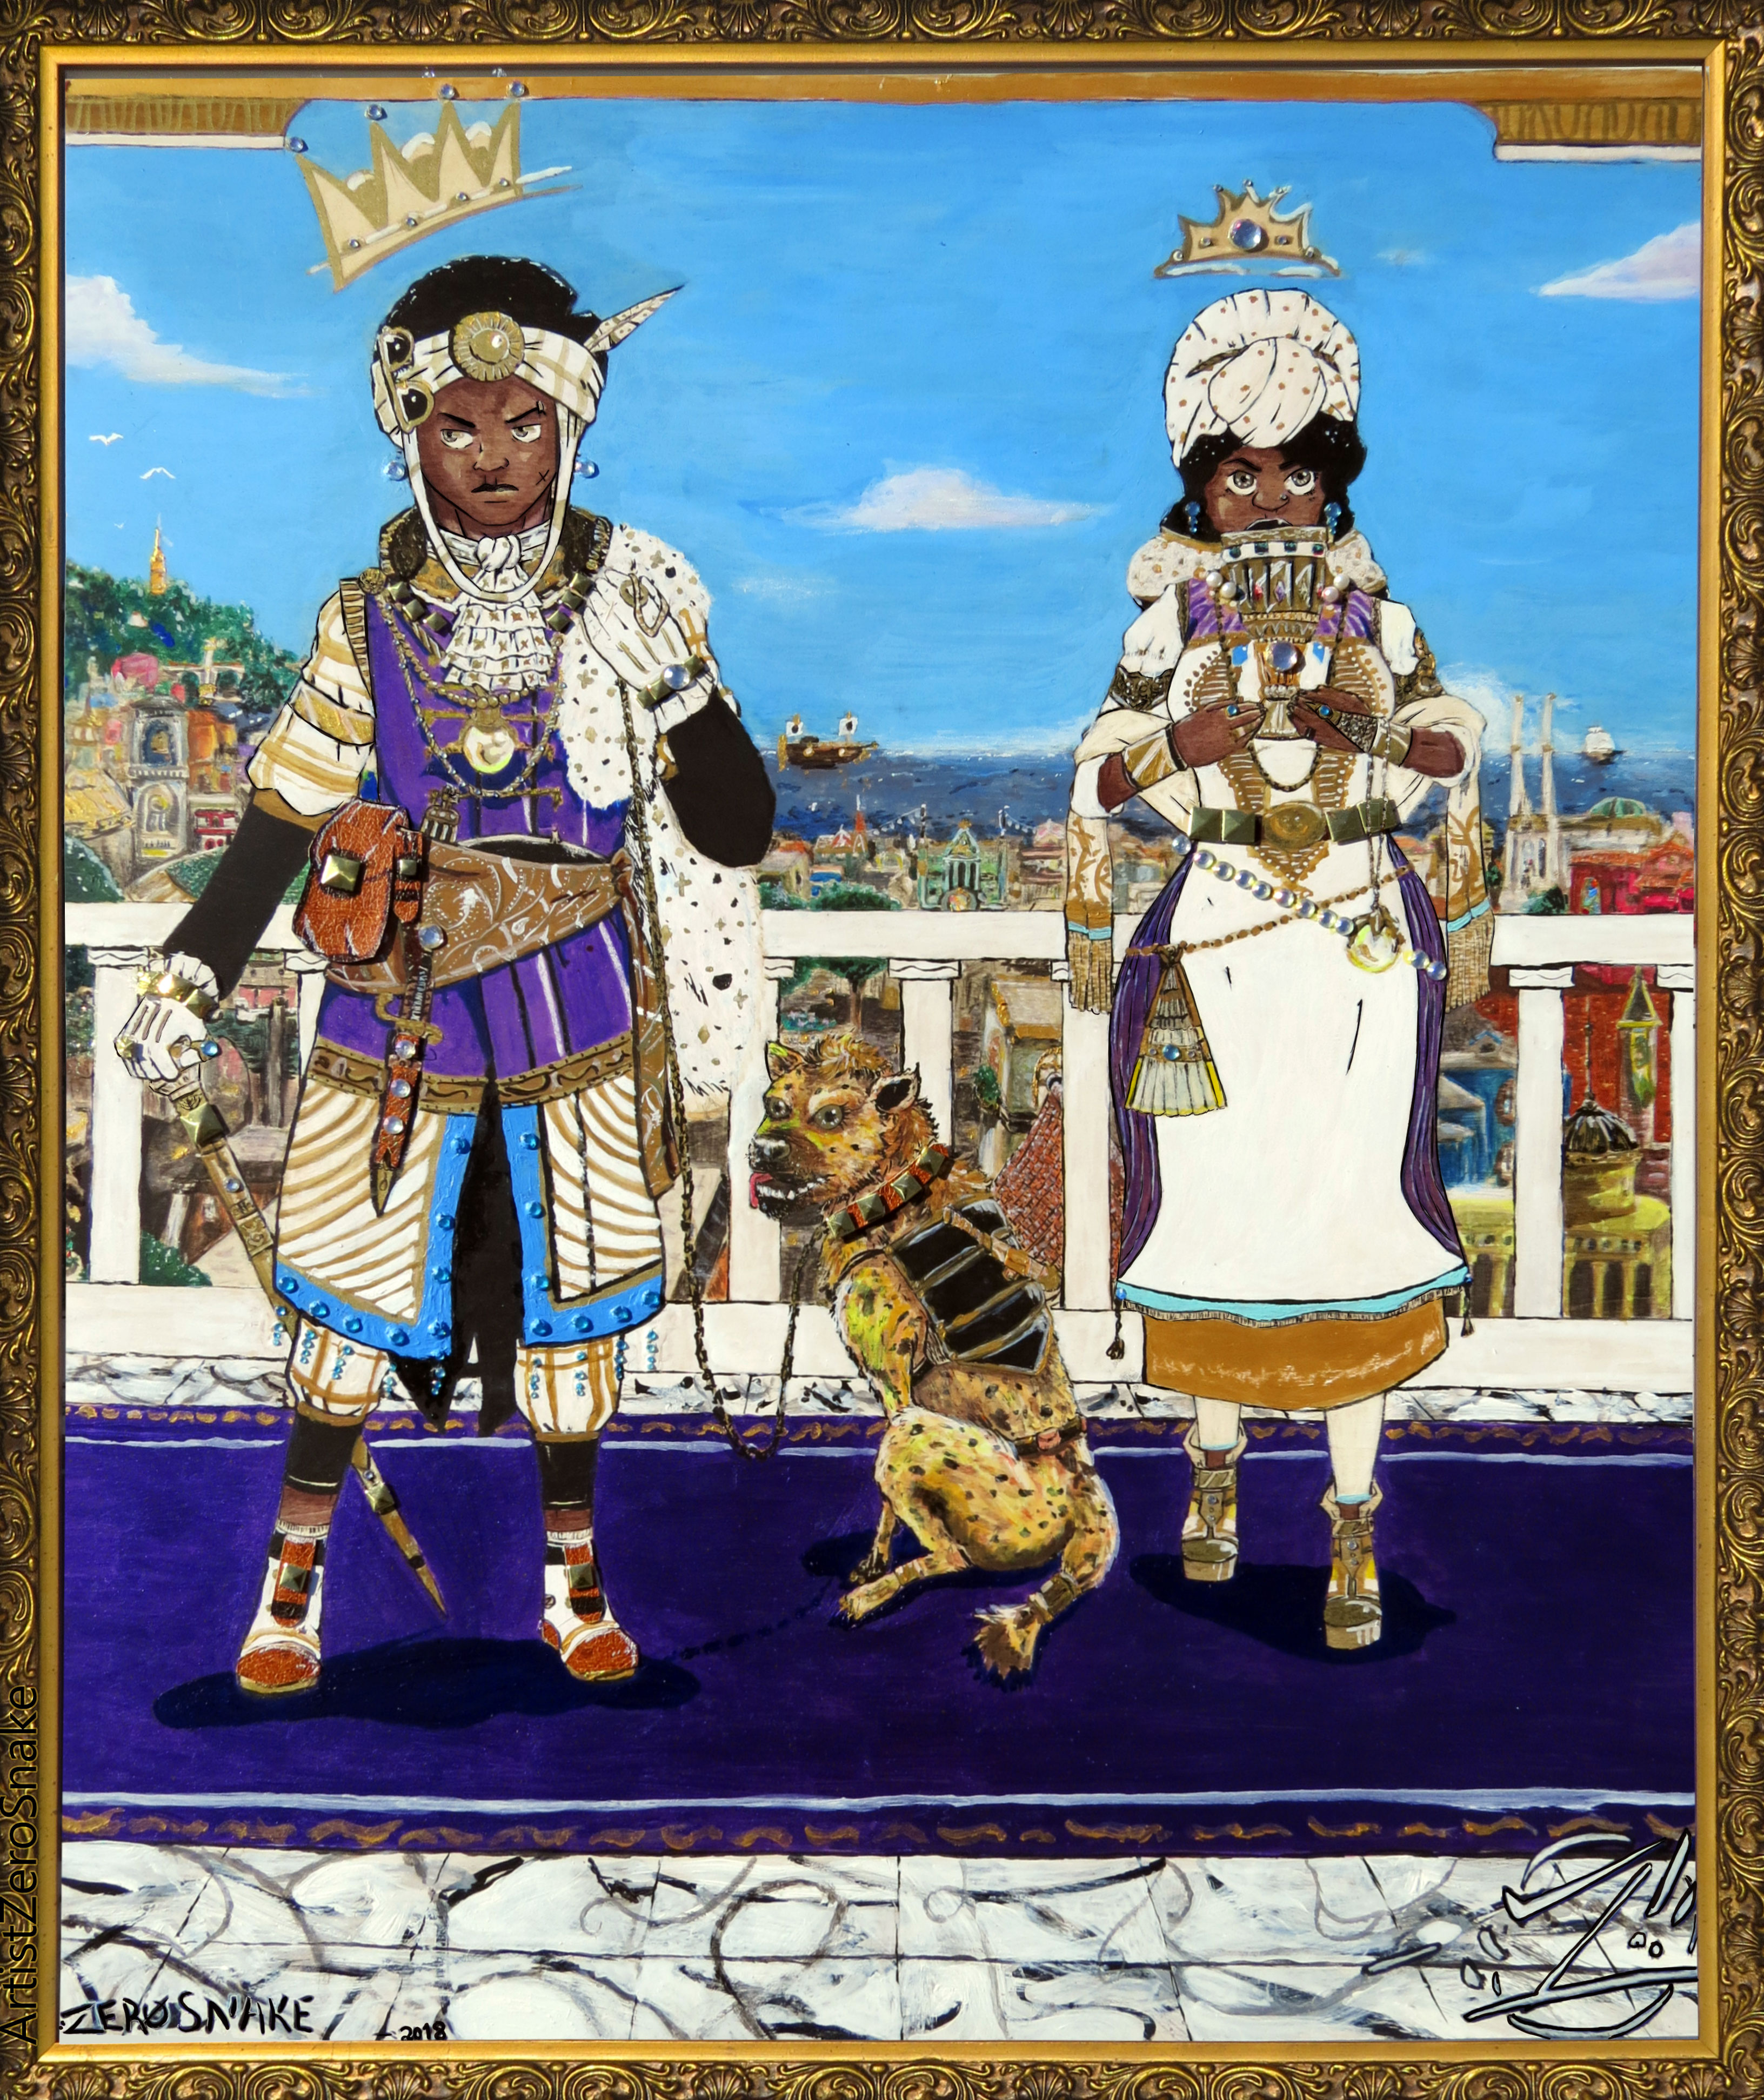 Le Royals artwork by Tyrone Motley - art listed for sale on Artplode